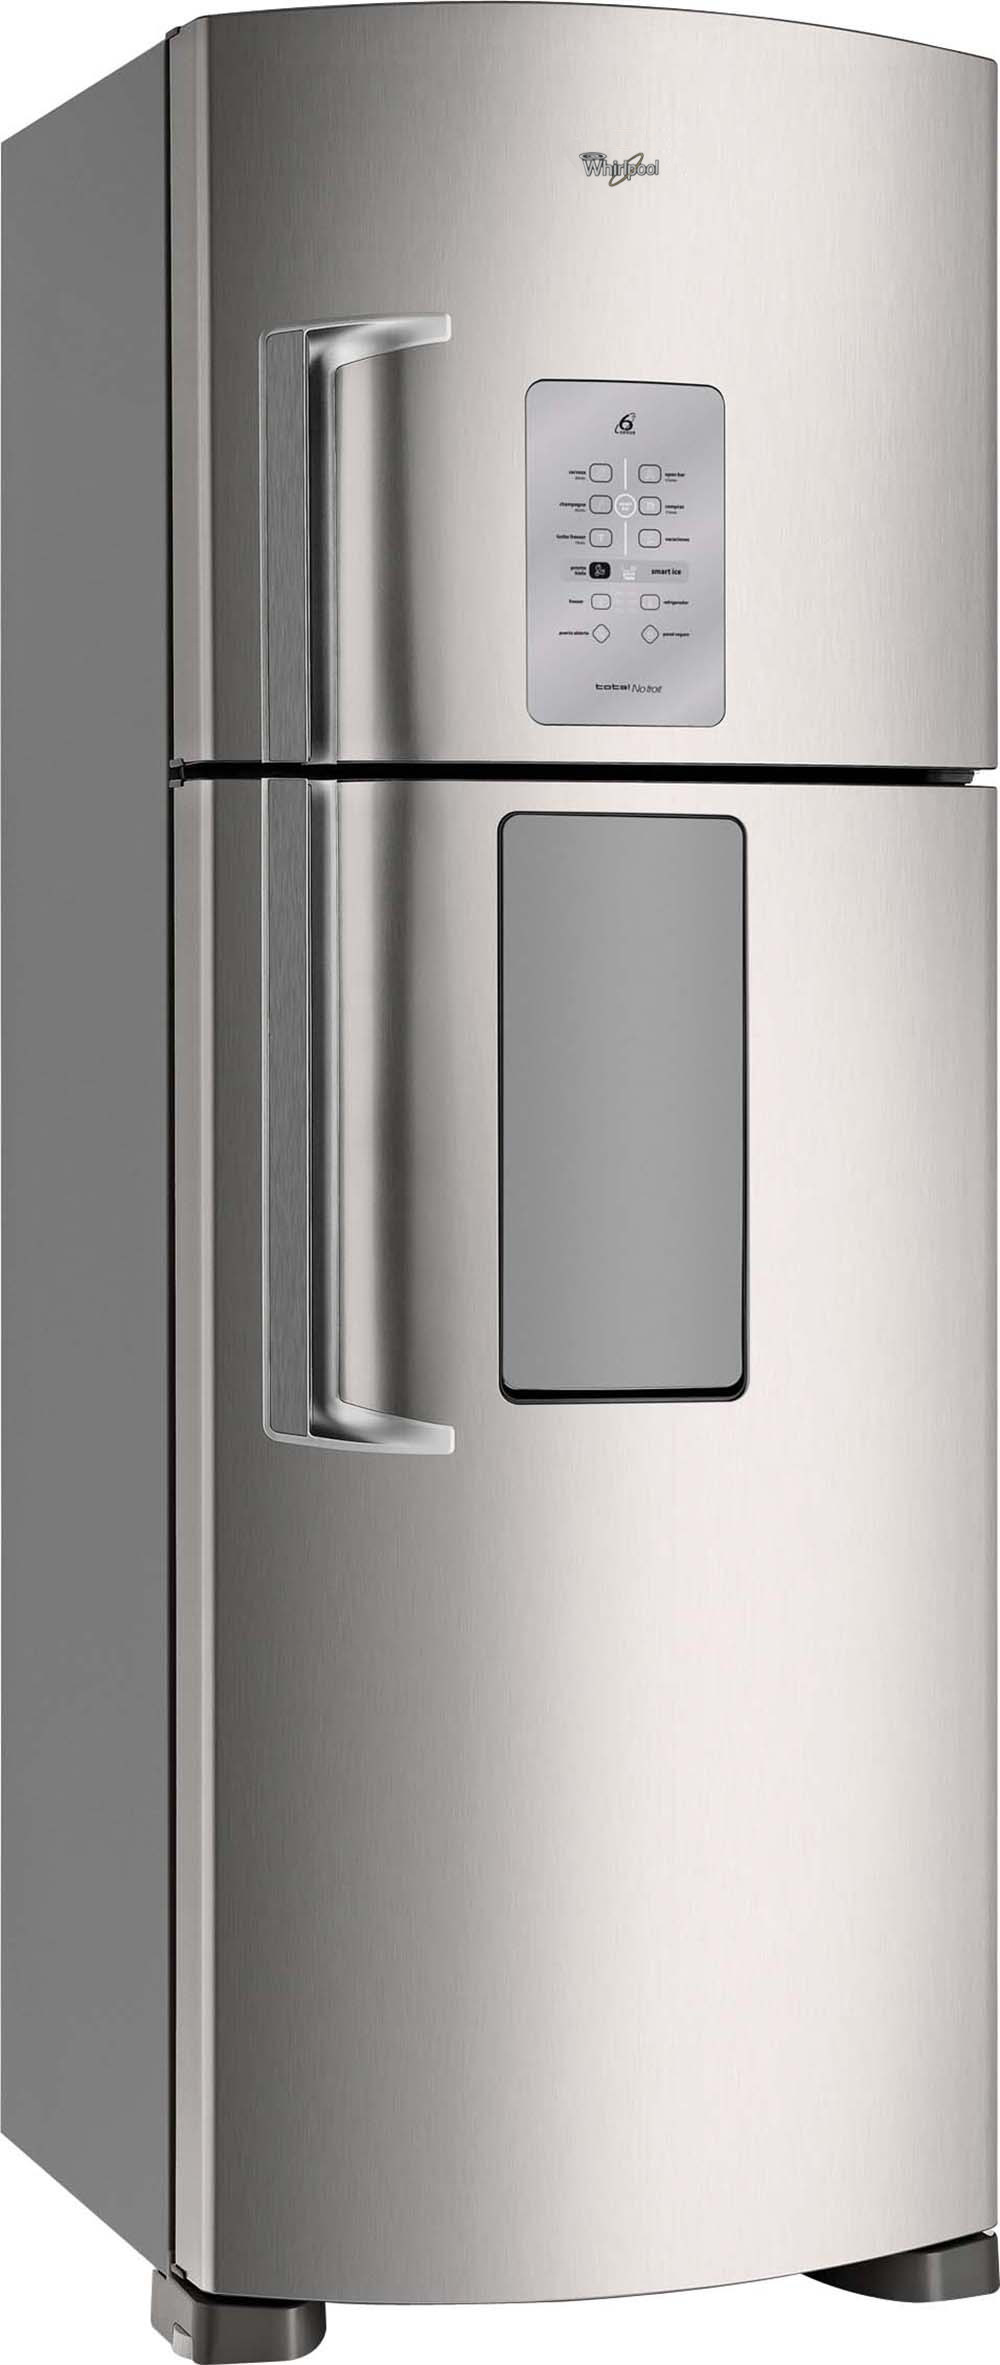 Www Whirlpool Com >> Whirlpool Paraguay | Productos No Frost